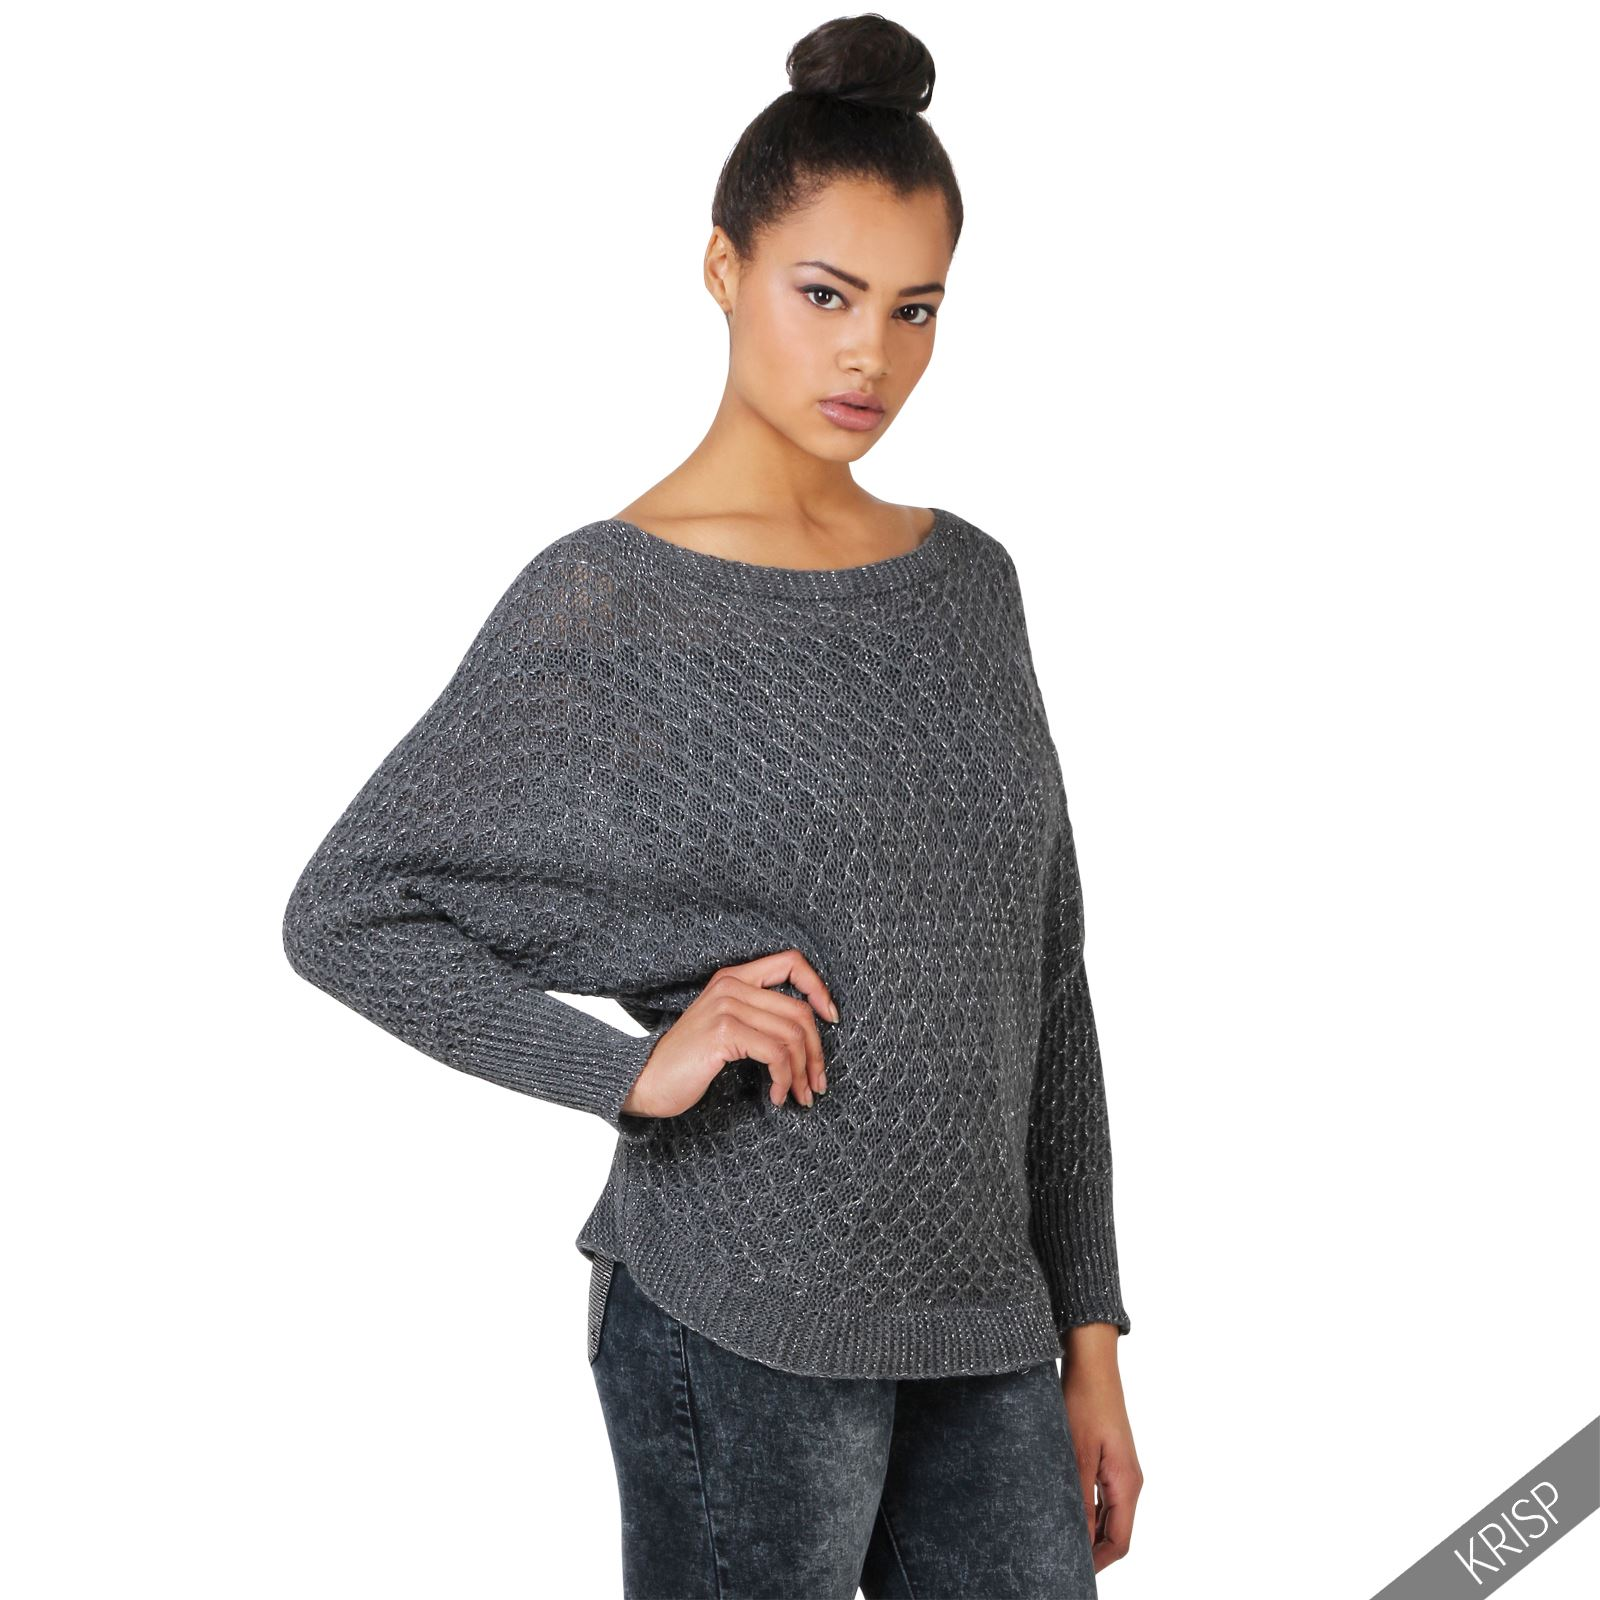 womens glitter knit oversize batwing jumpers ladies casual sweater pullover top ebay. Black Bedroom Furniture Sets. Home Design Ideas